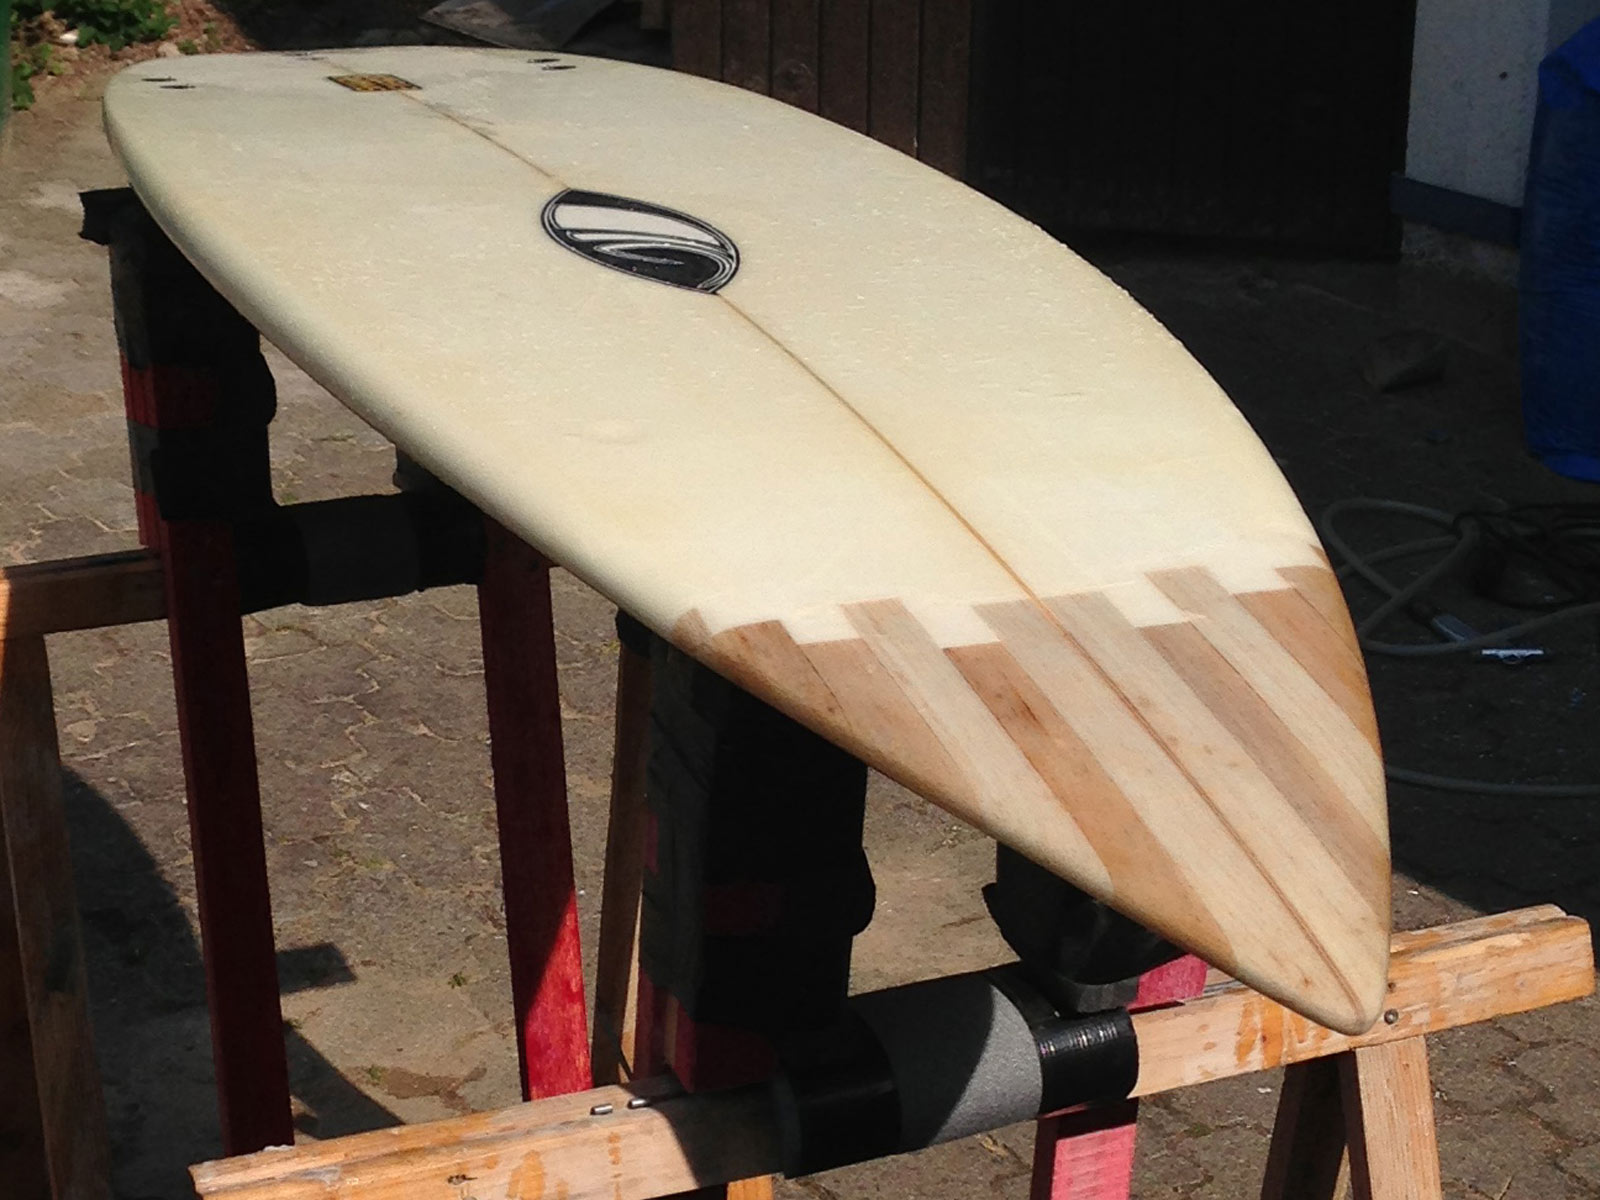 surfboard-repair-balsa-nose